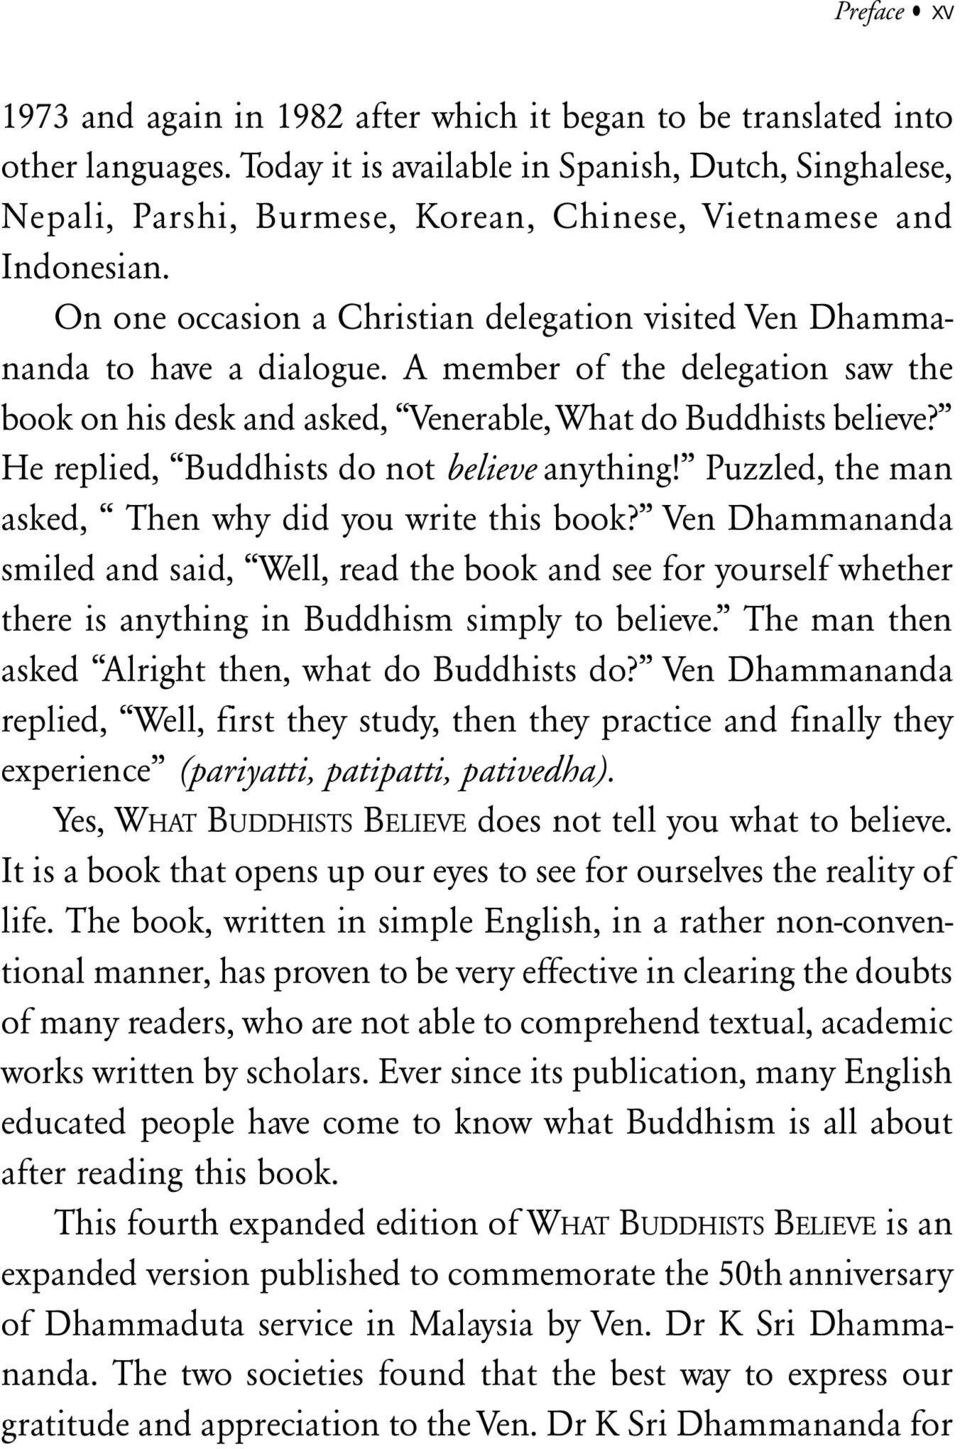 On one occasion a Christian delegation visited Ven Dhammananda to have a dialogue. A member of the delegation saw the book on his desk and asked, Venerable, What do Buddhists believe?